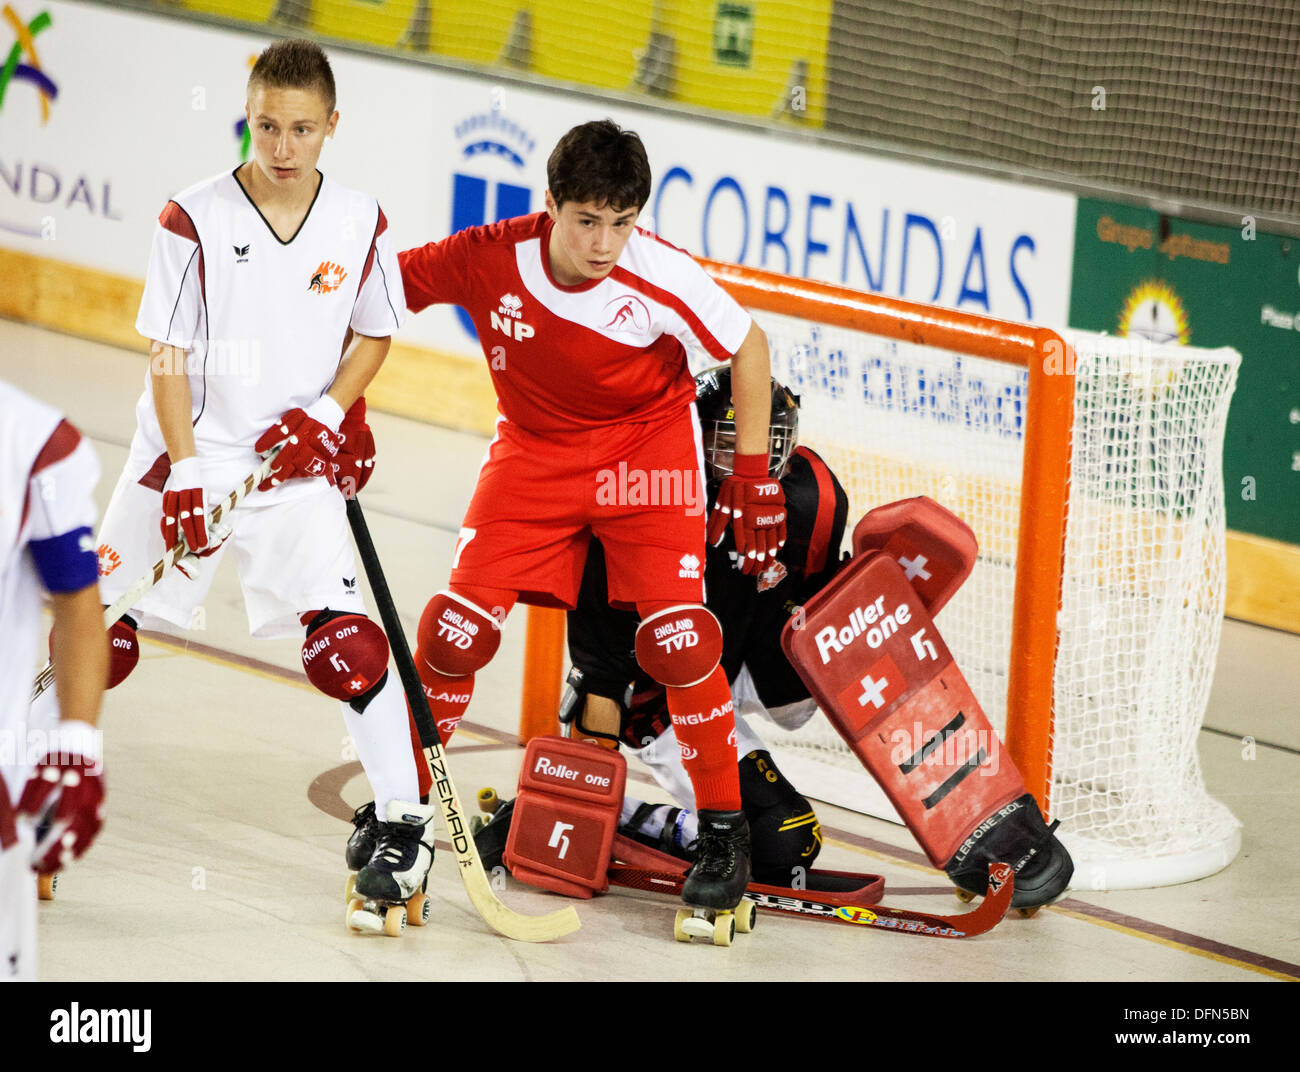 England v Switzerland U17 European Roller Hockey Championship, Madrid 2013 - Stock Image